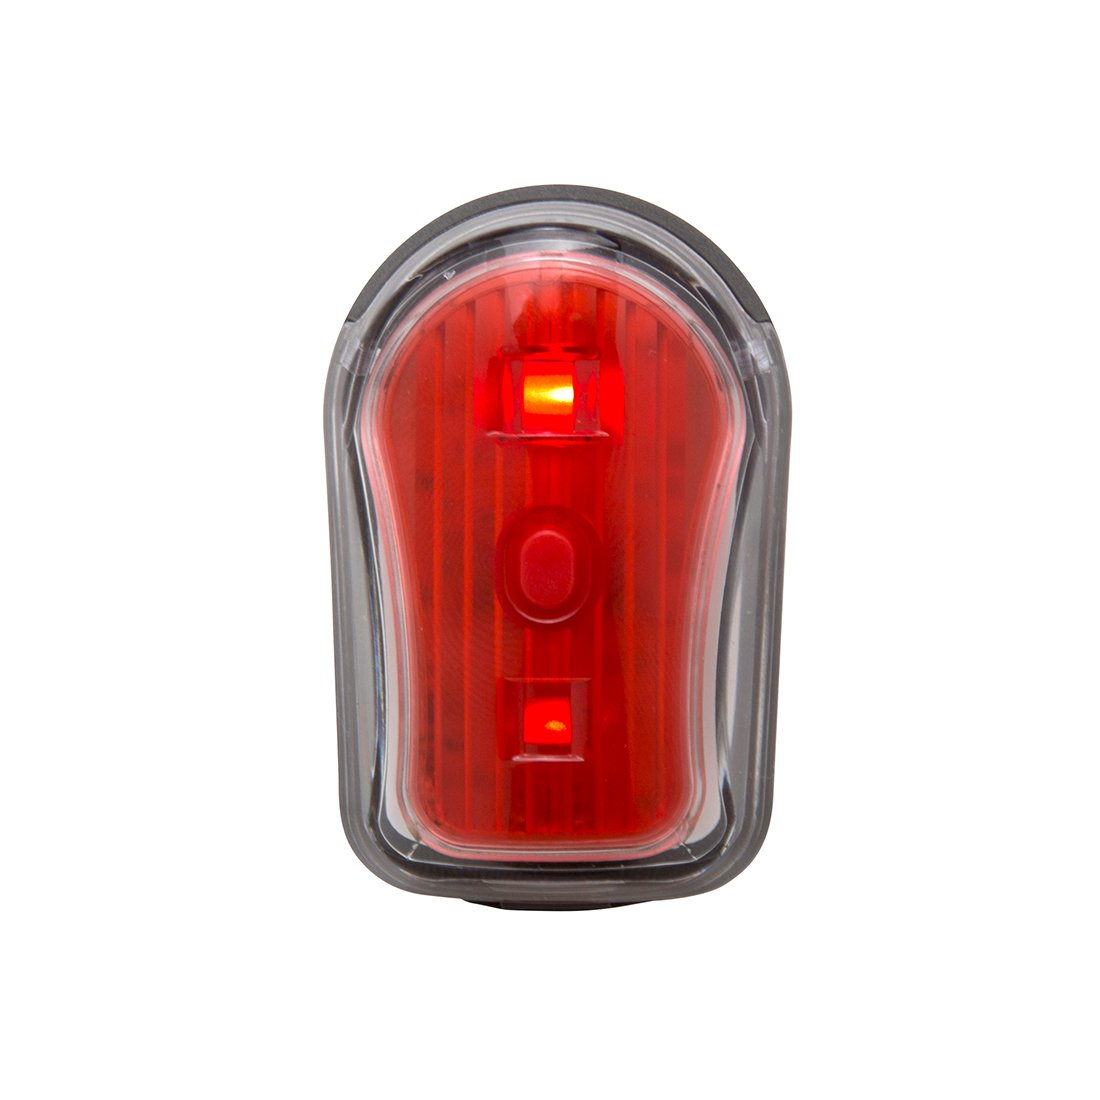 Planet Bike Superflash Micro USB bike tail light